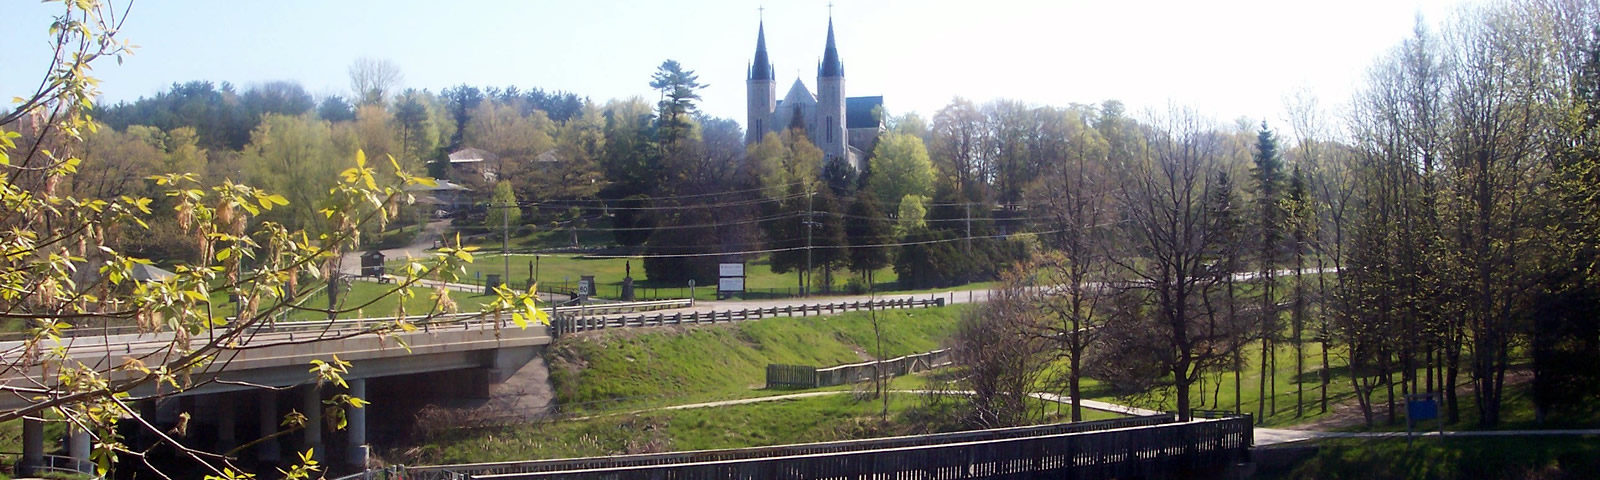 Martyrs Shrine and Sainte Marie Among The Hurons in Tay